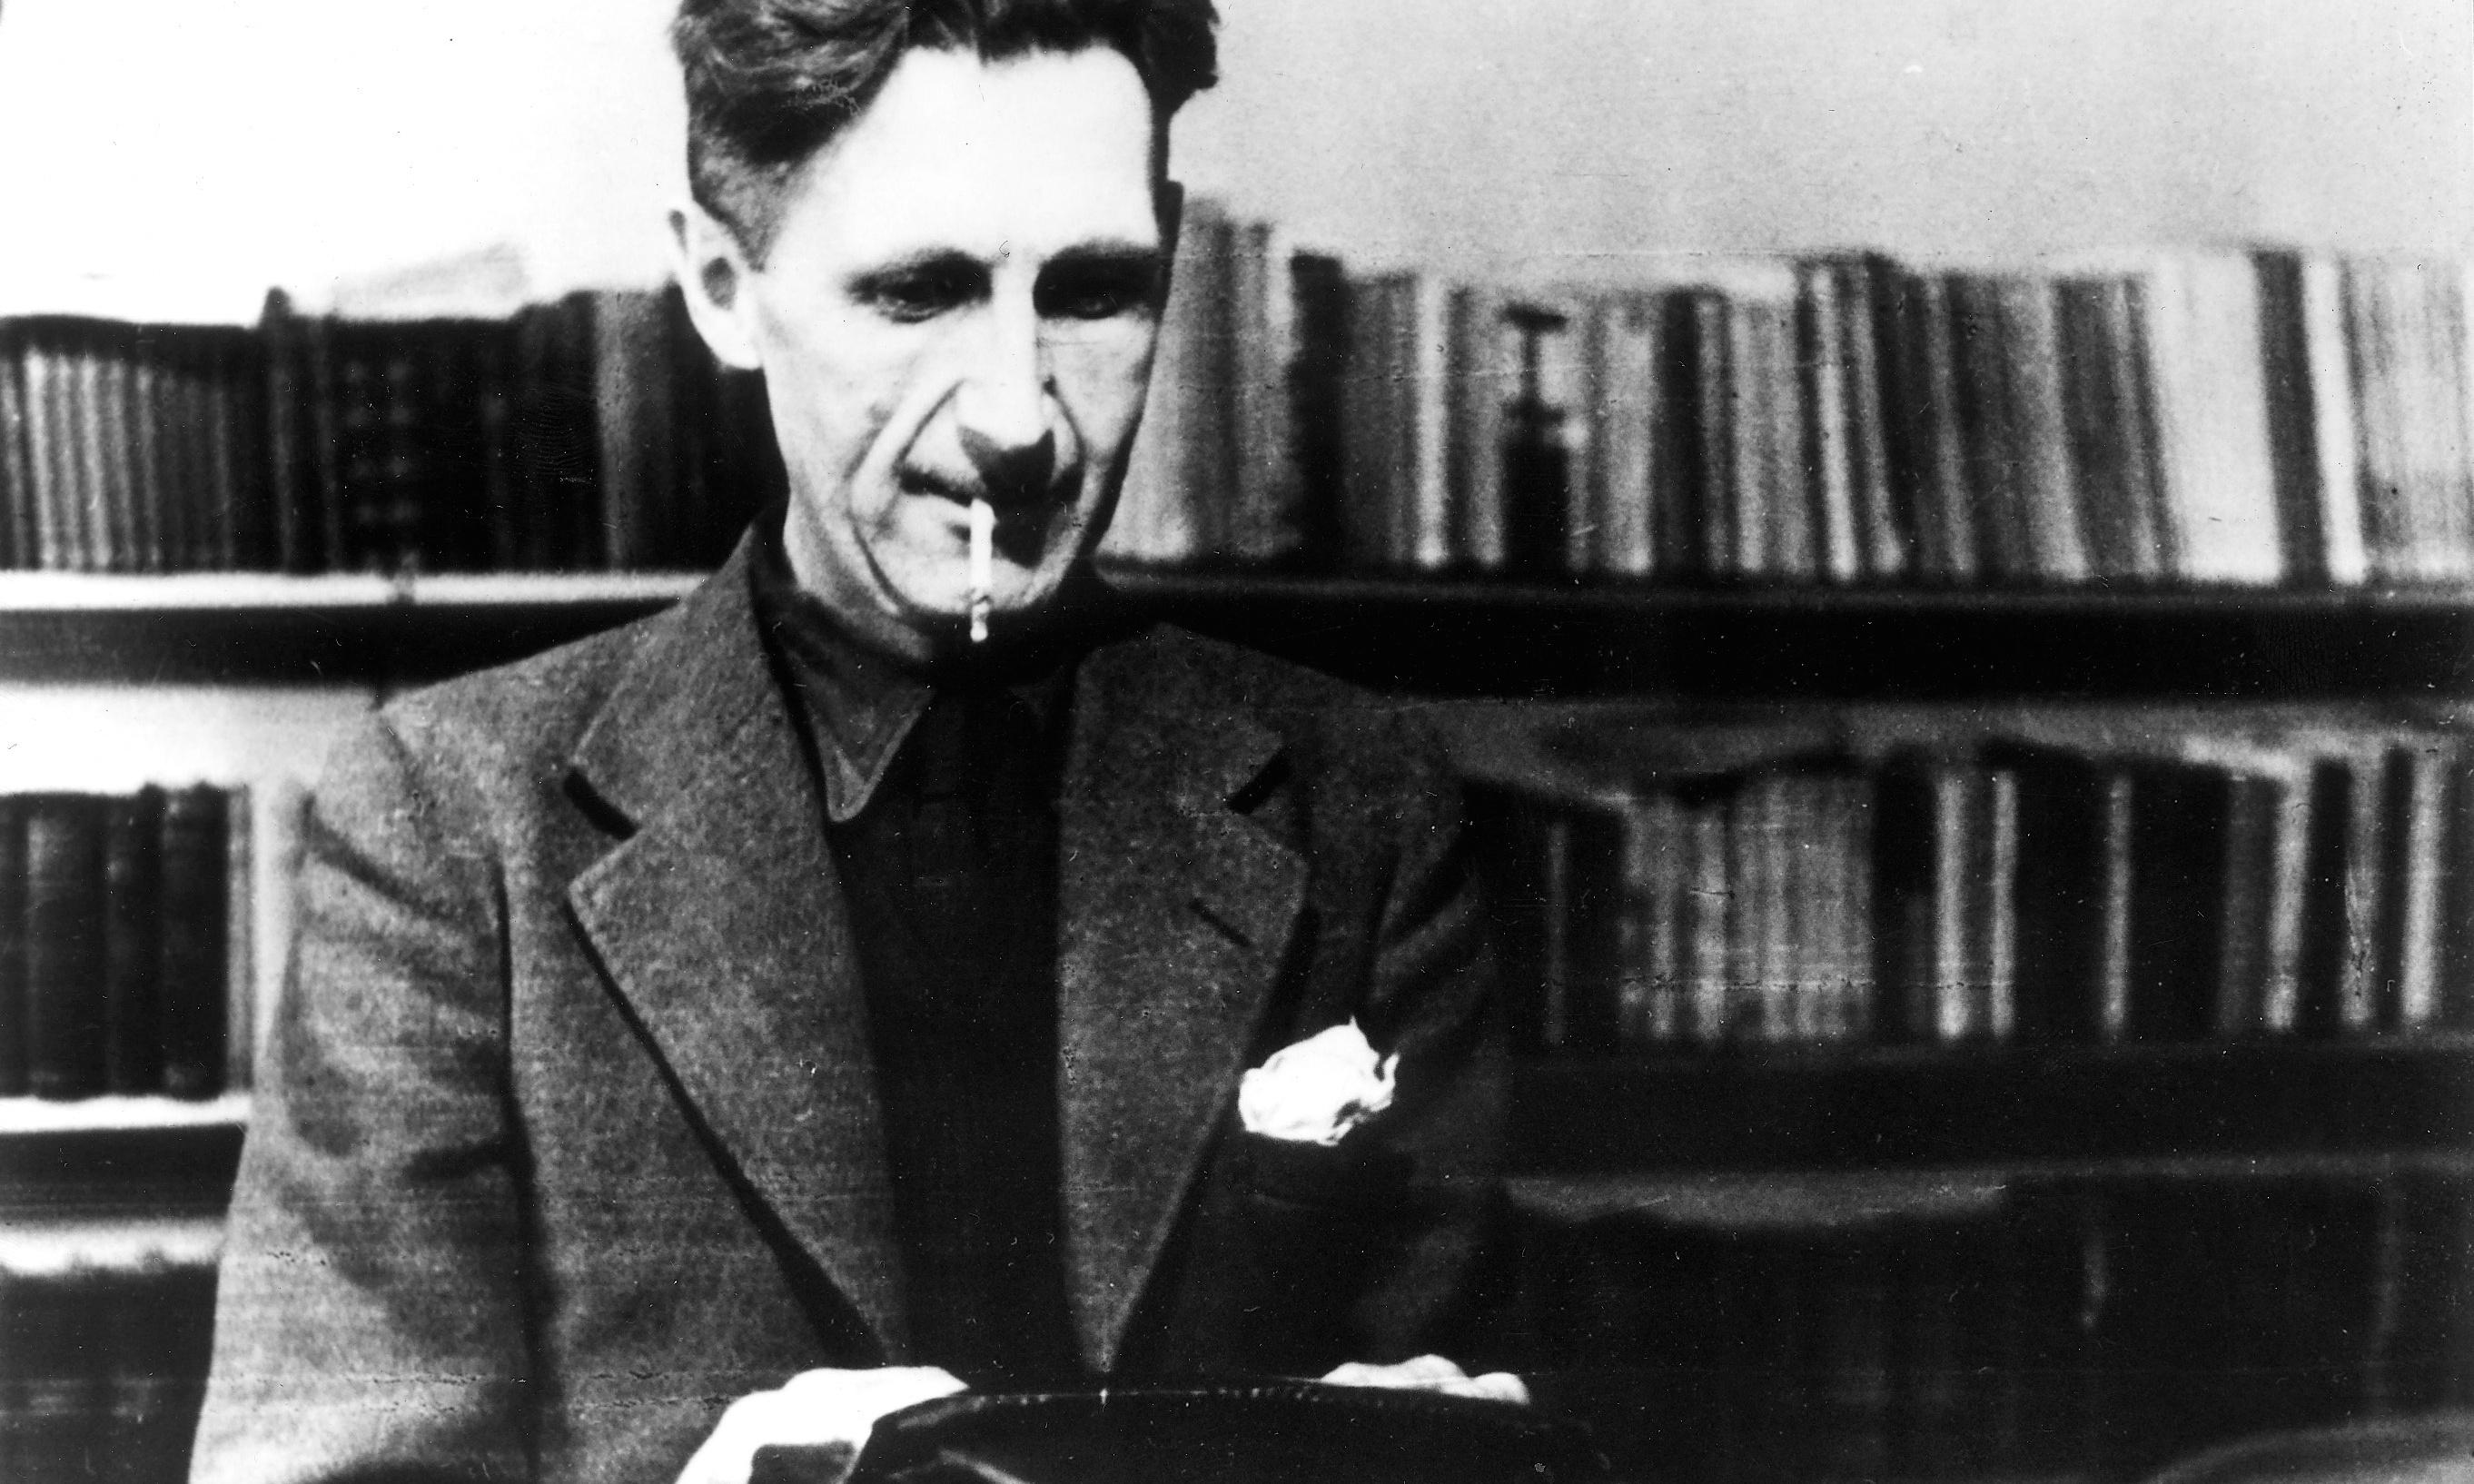 'He typed in bed in his dressing gown': how Orwell wrote Nineteen Eighty-Four